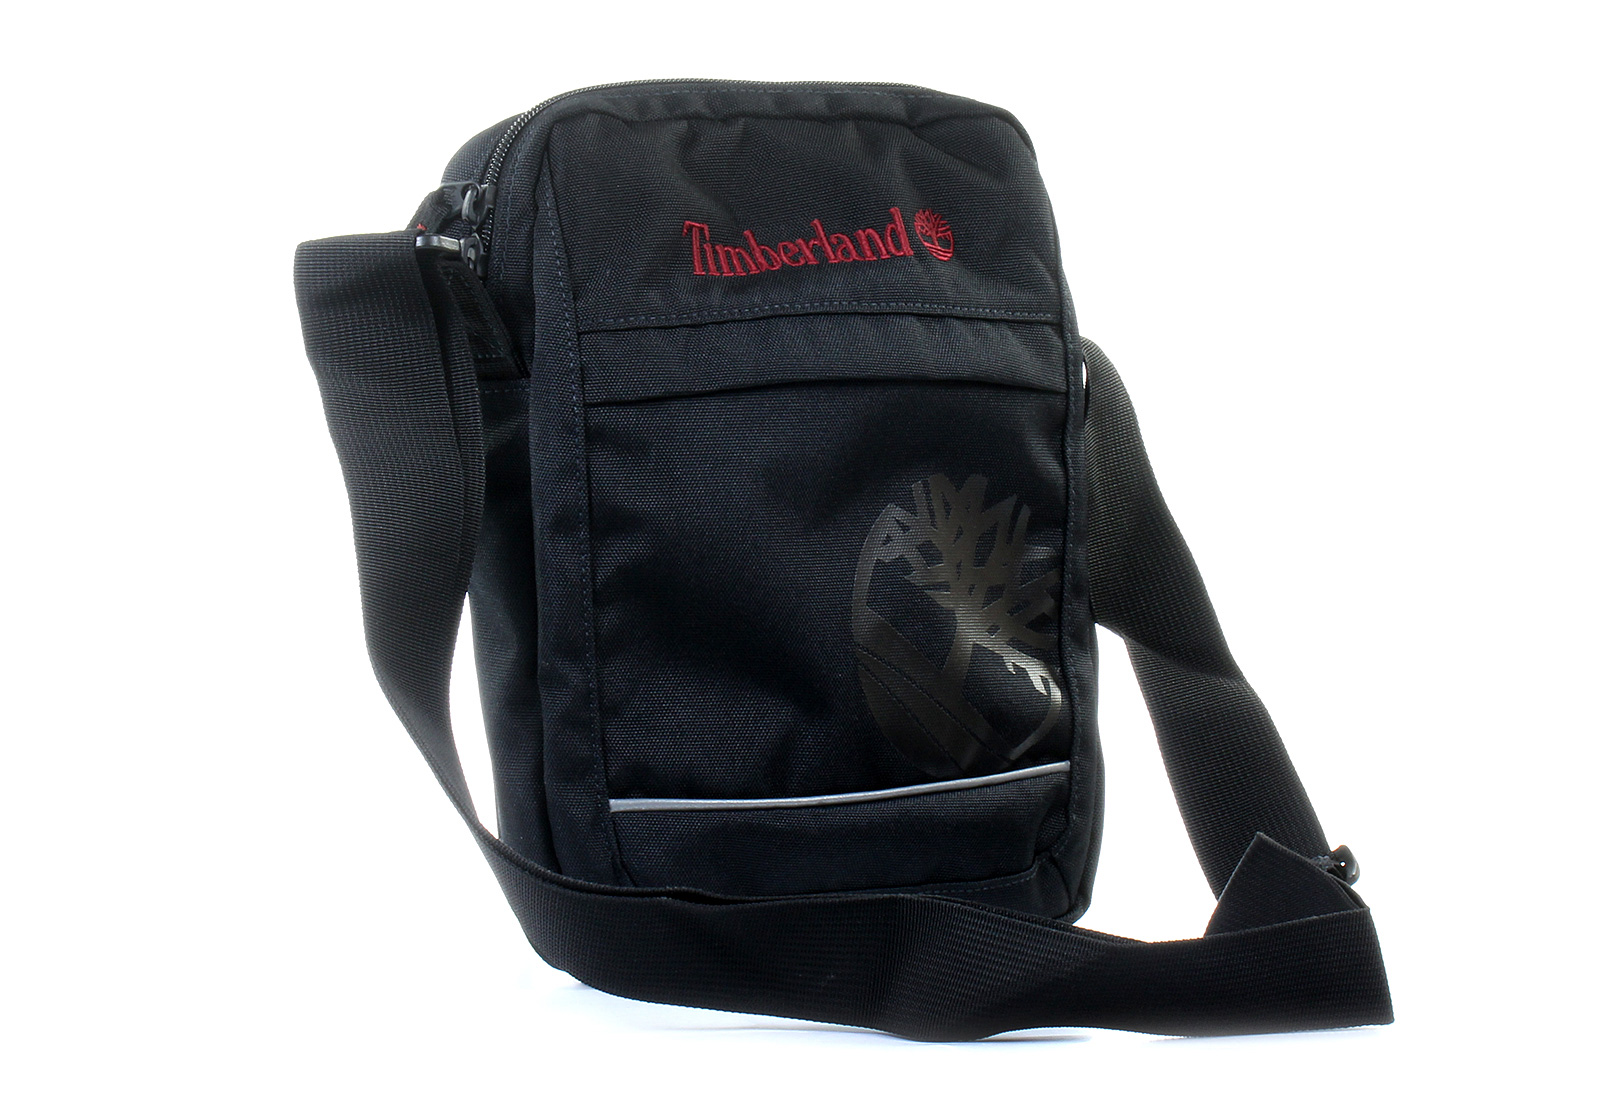 b999193601 Timberland - Small Items Bag Black - J0836-001 - Online shop for ...